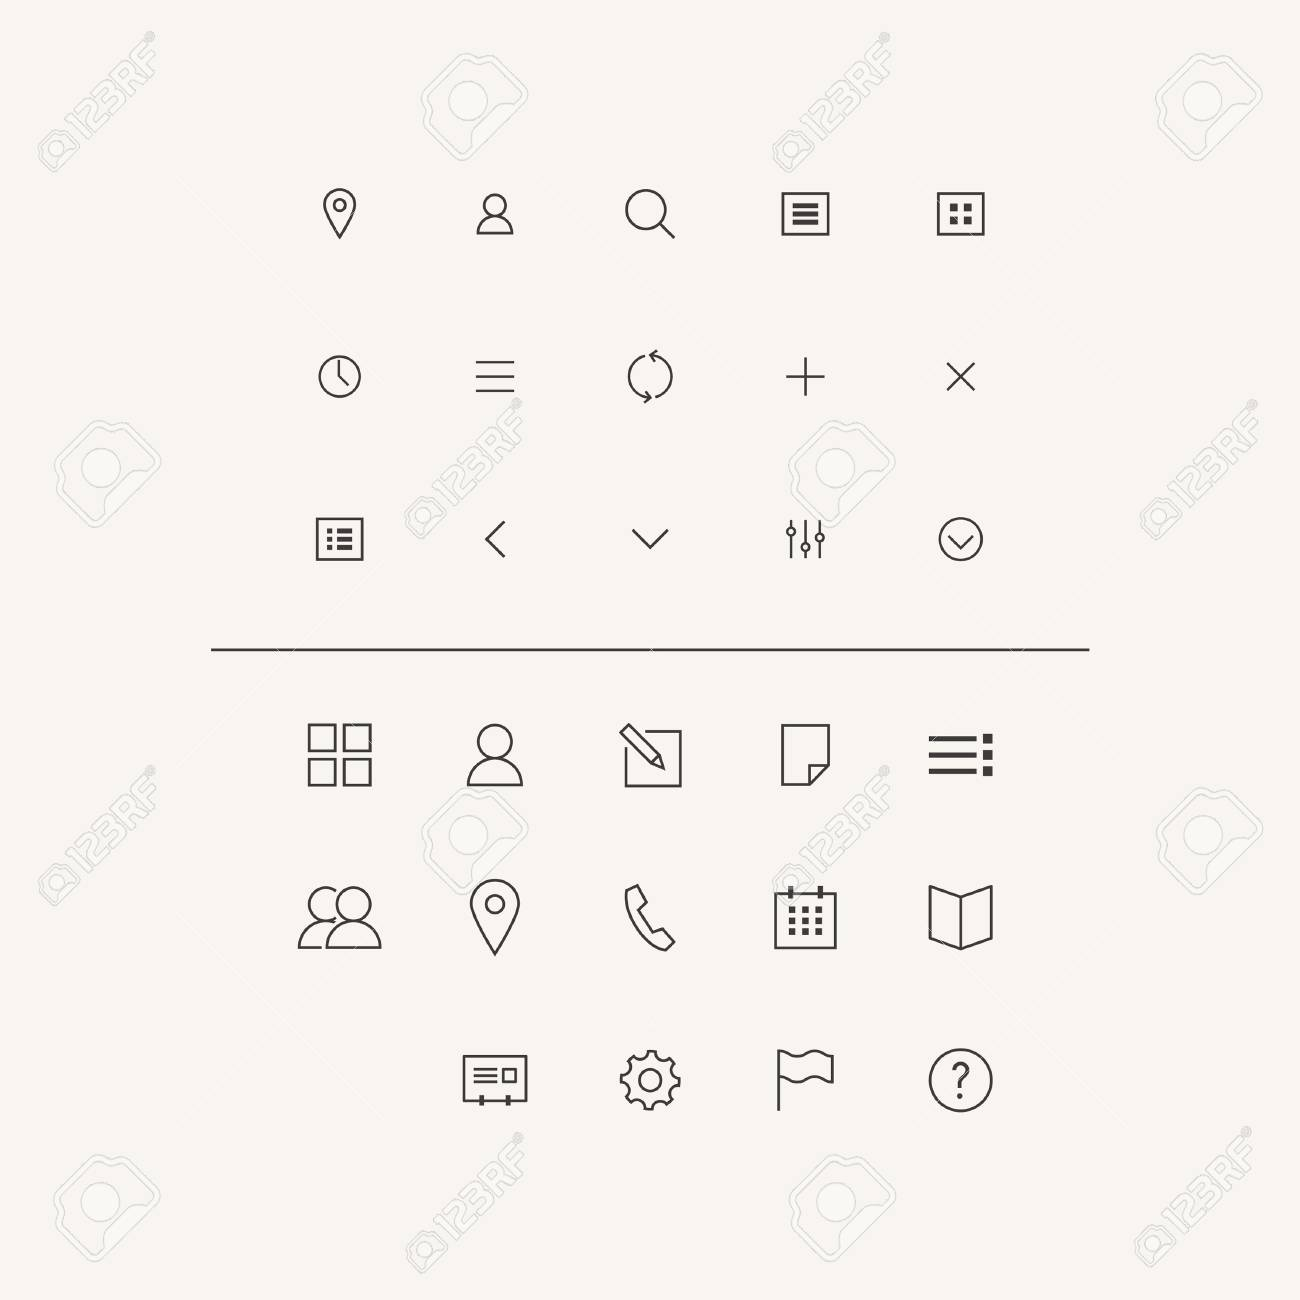 Vector Icons Set in Flat Style Stock Vector - 29728137